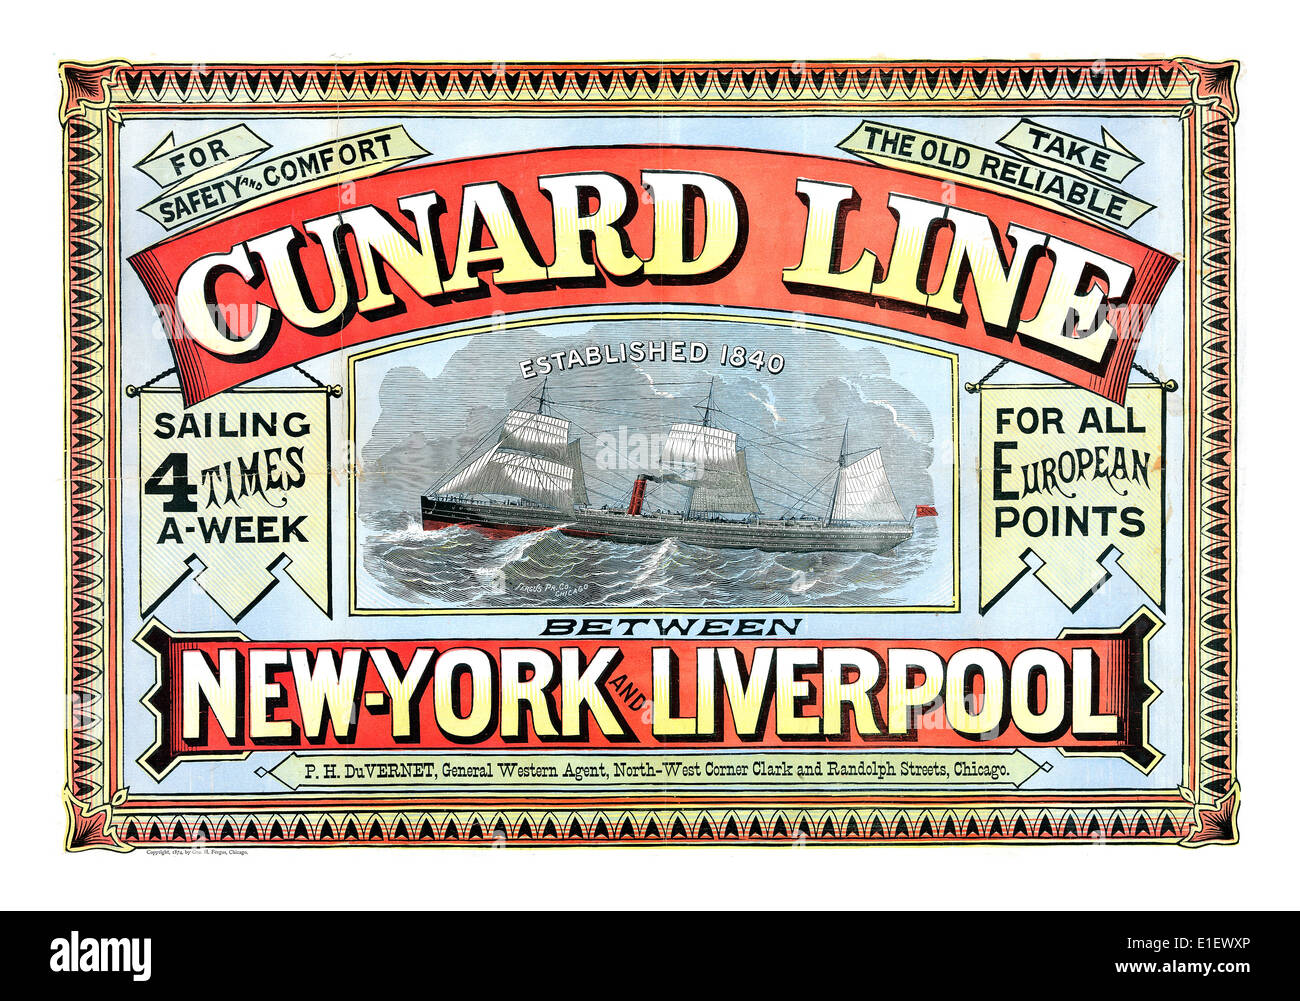 CUNARD LINE SHIPPING POSTER 19th Century vintage historic  poster for Cunard Line sailing trans Atlantic from Liverpool to New York - Stock Image